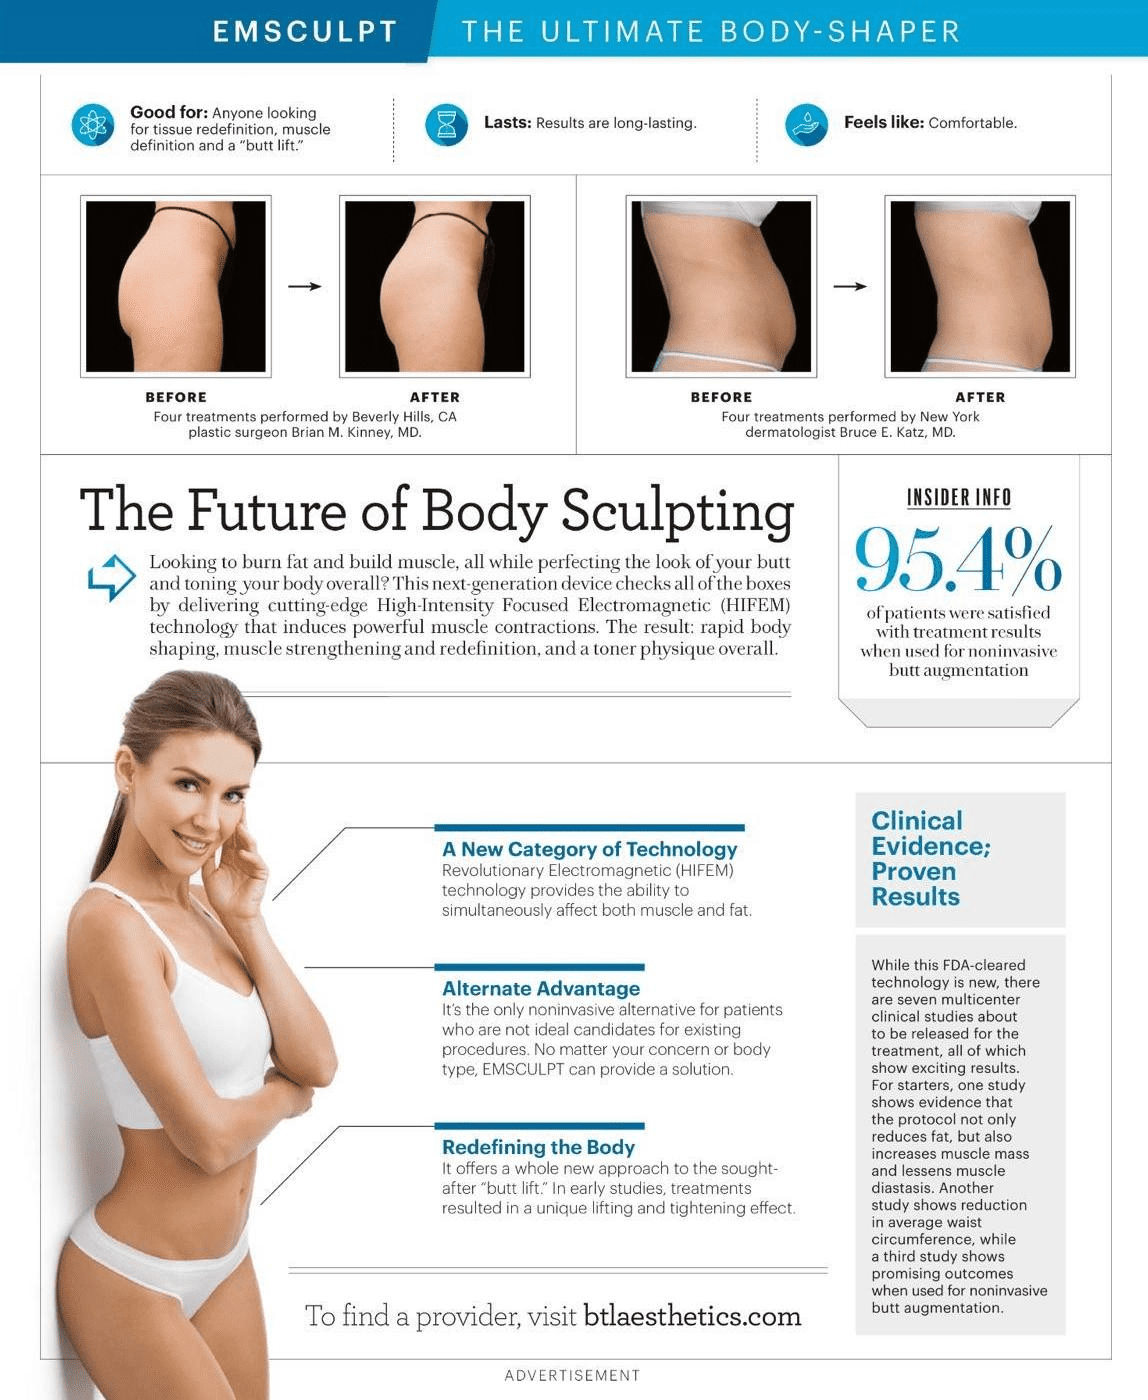 EMSculpt Specialist - Sewell, NJ: Perri Skin Care/Surgical